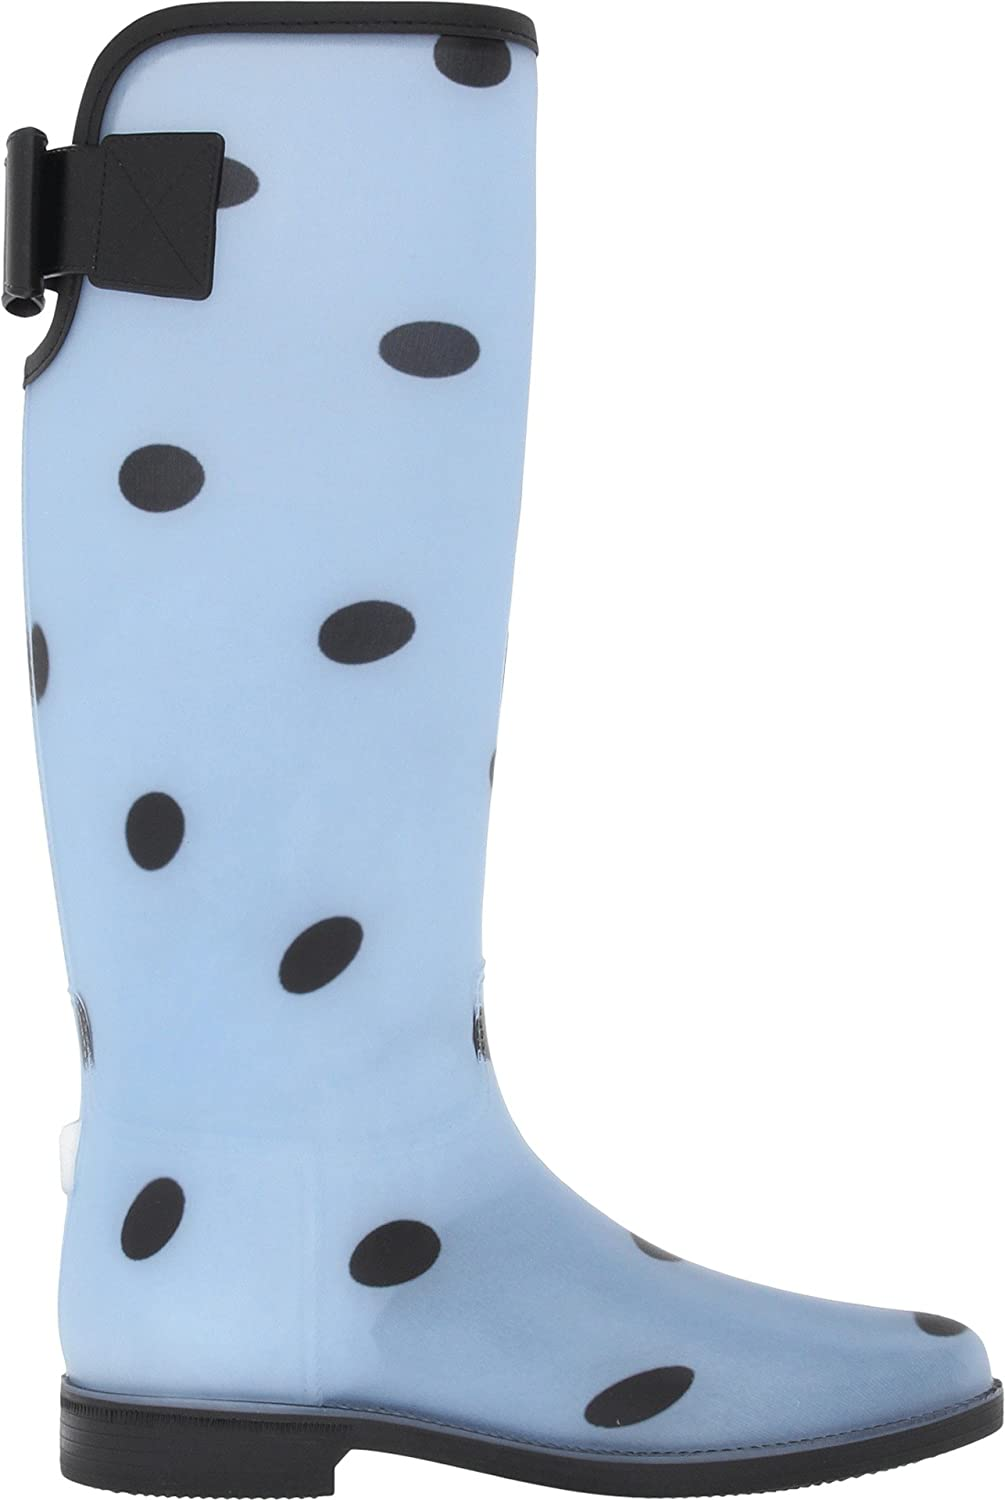 Dirty Laundry by Chinese Laundry Womens Royal Rain Boot